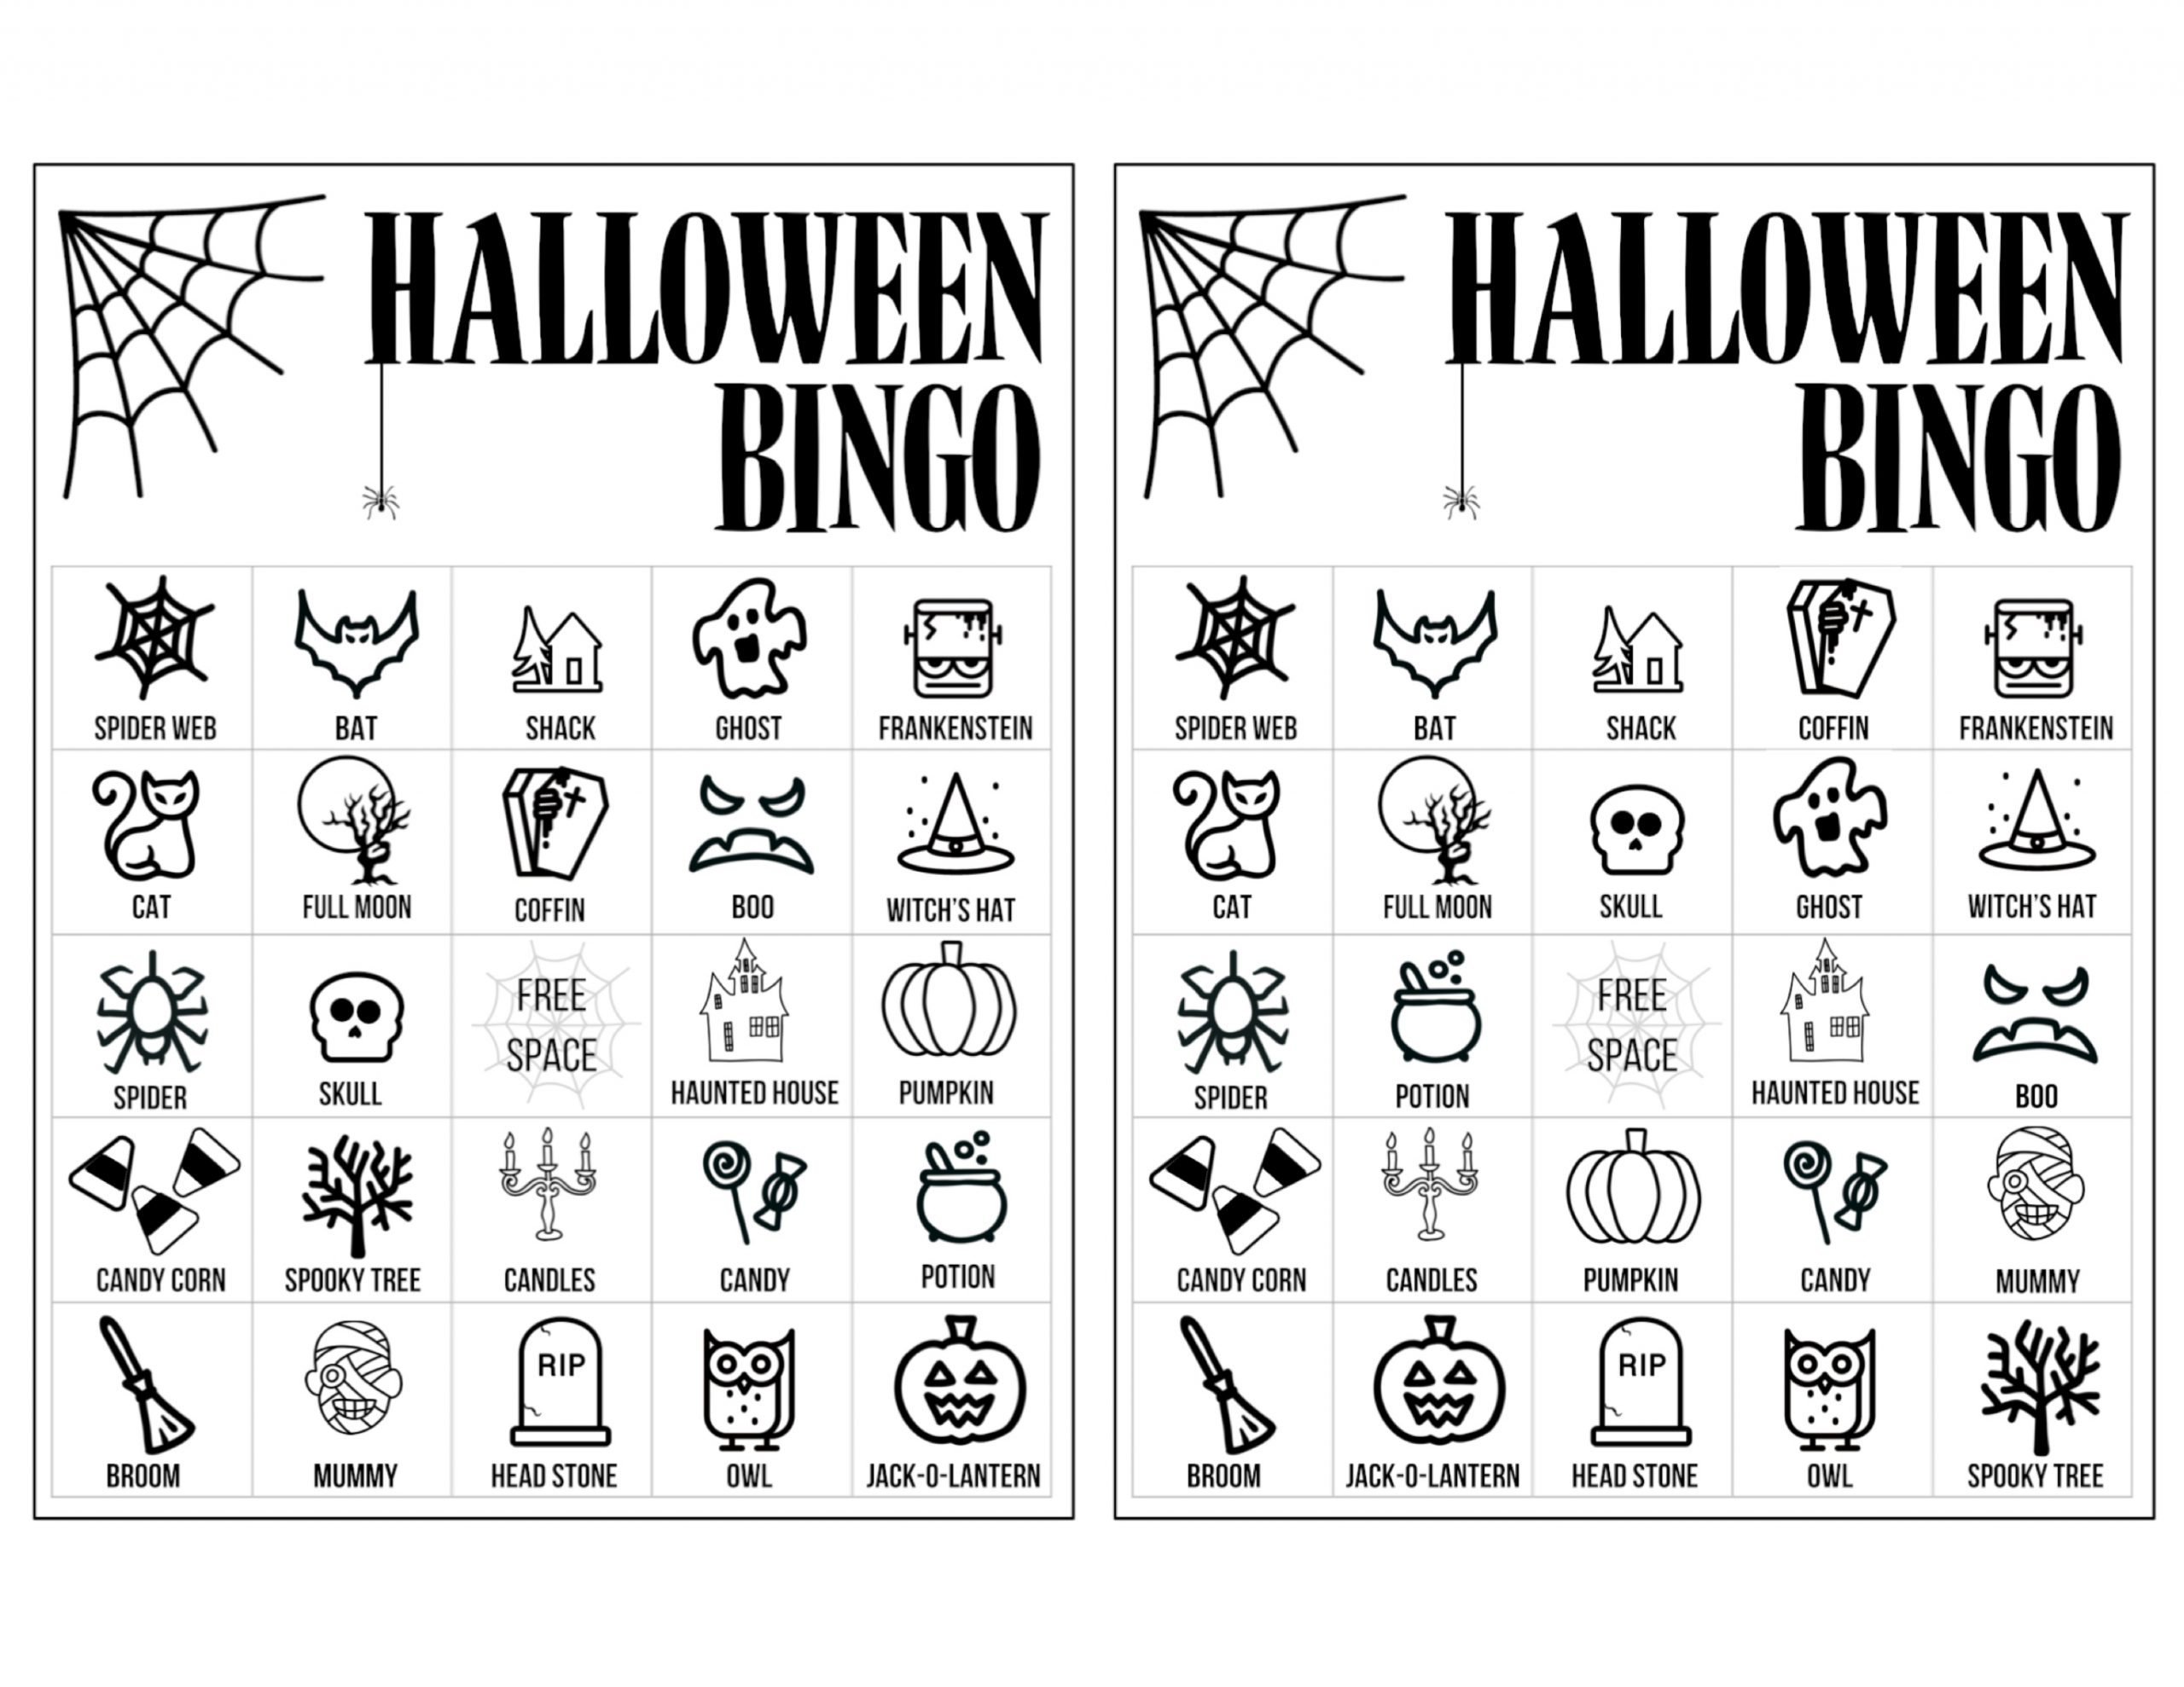 Halloween Bingo Printable Game Cards Template - Paper Trail